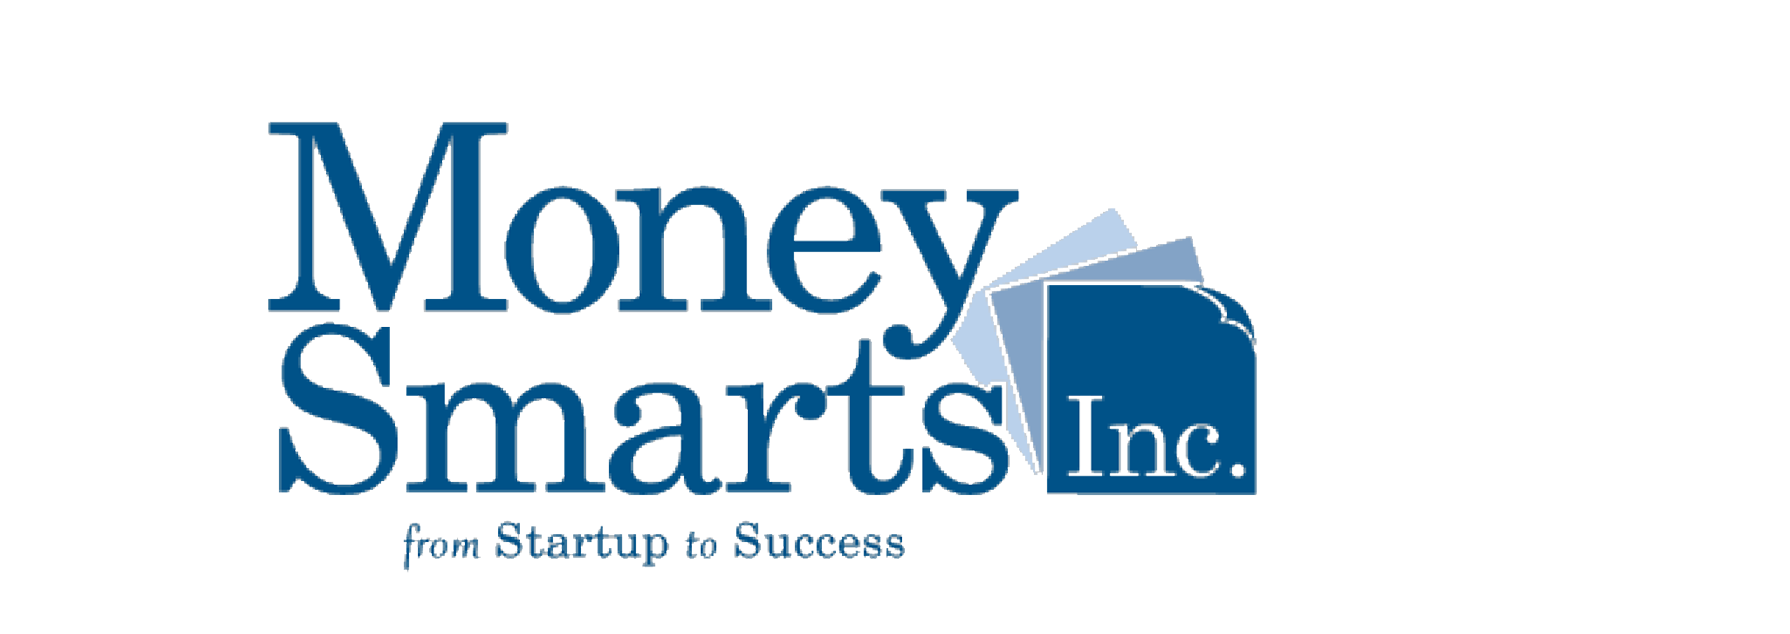 MoneySmarts Inc.